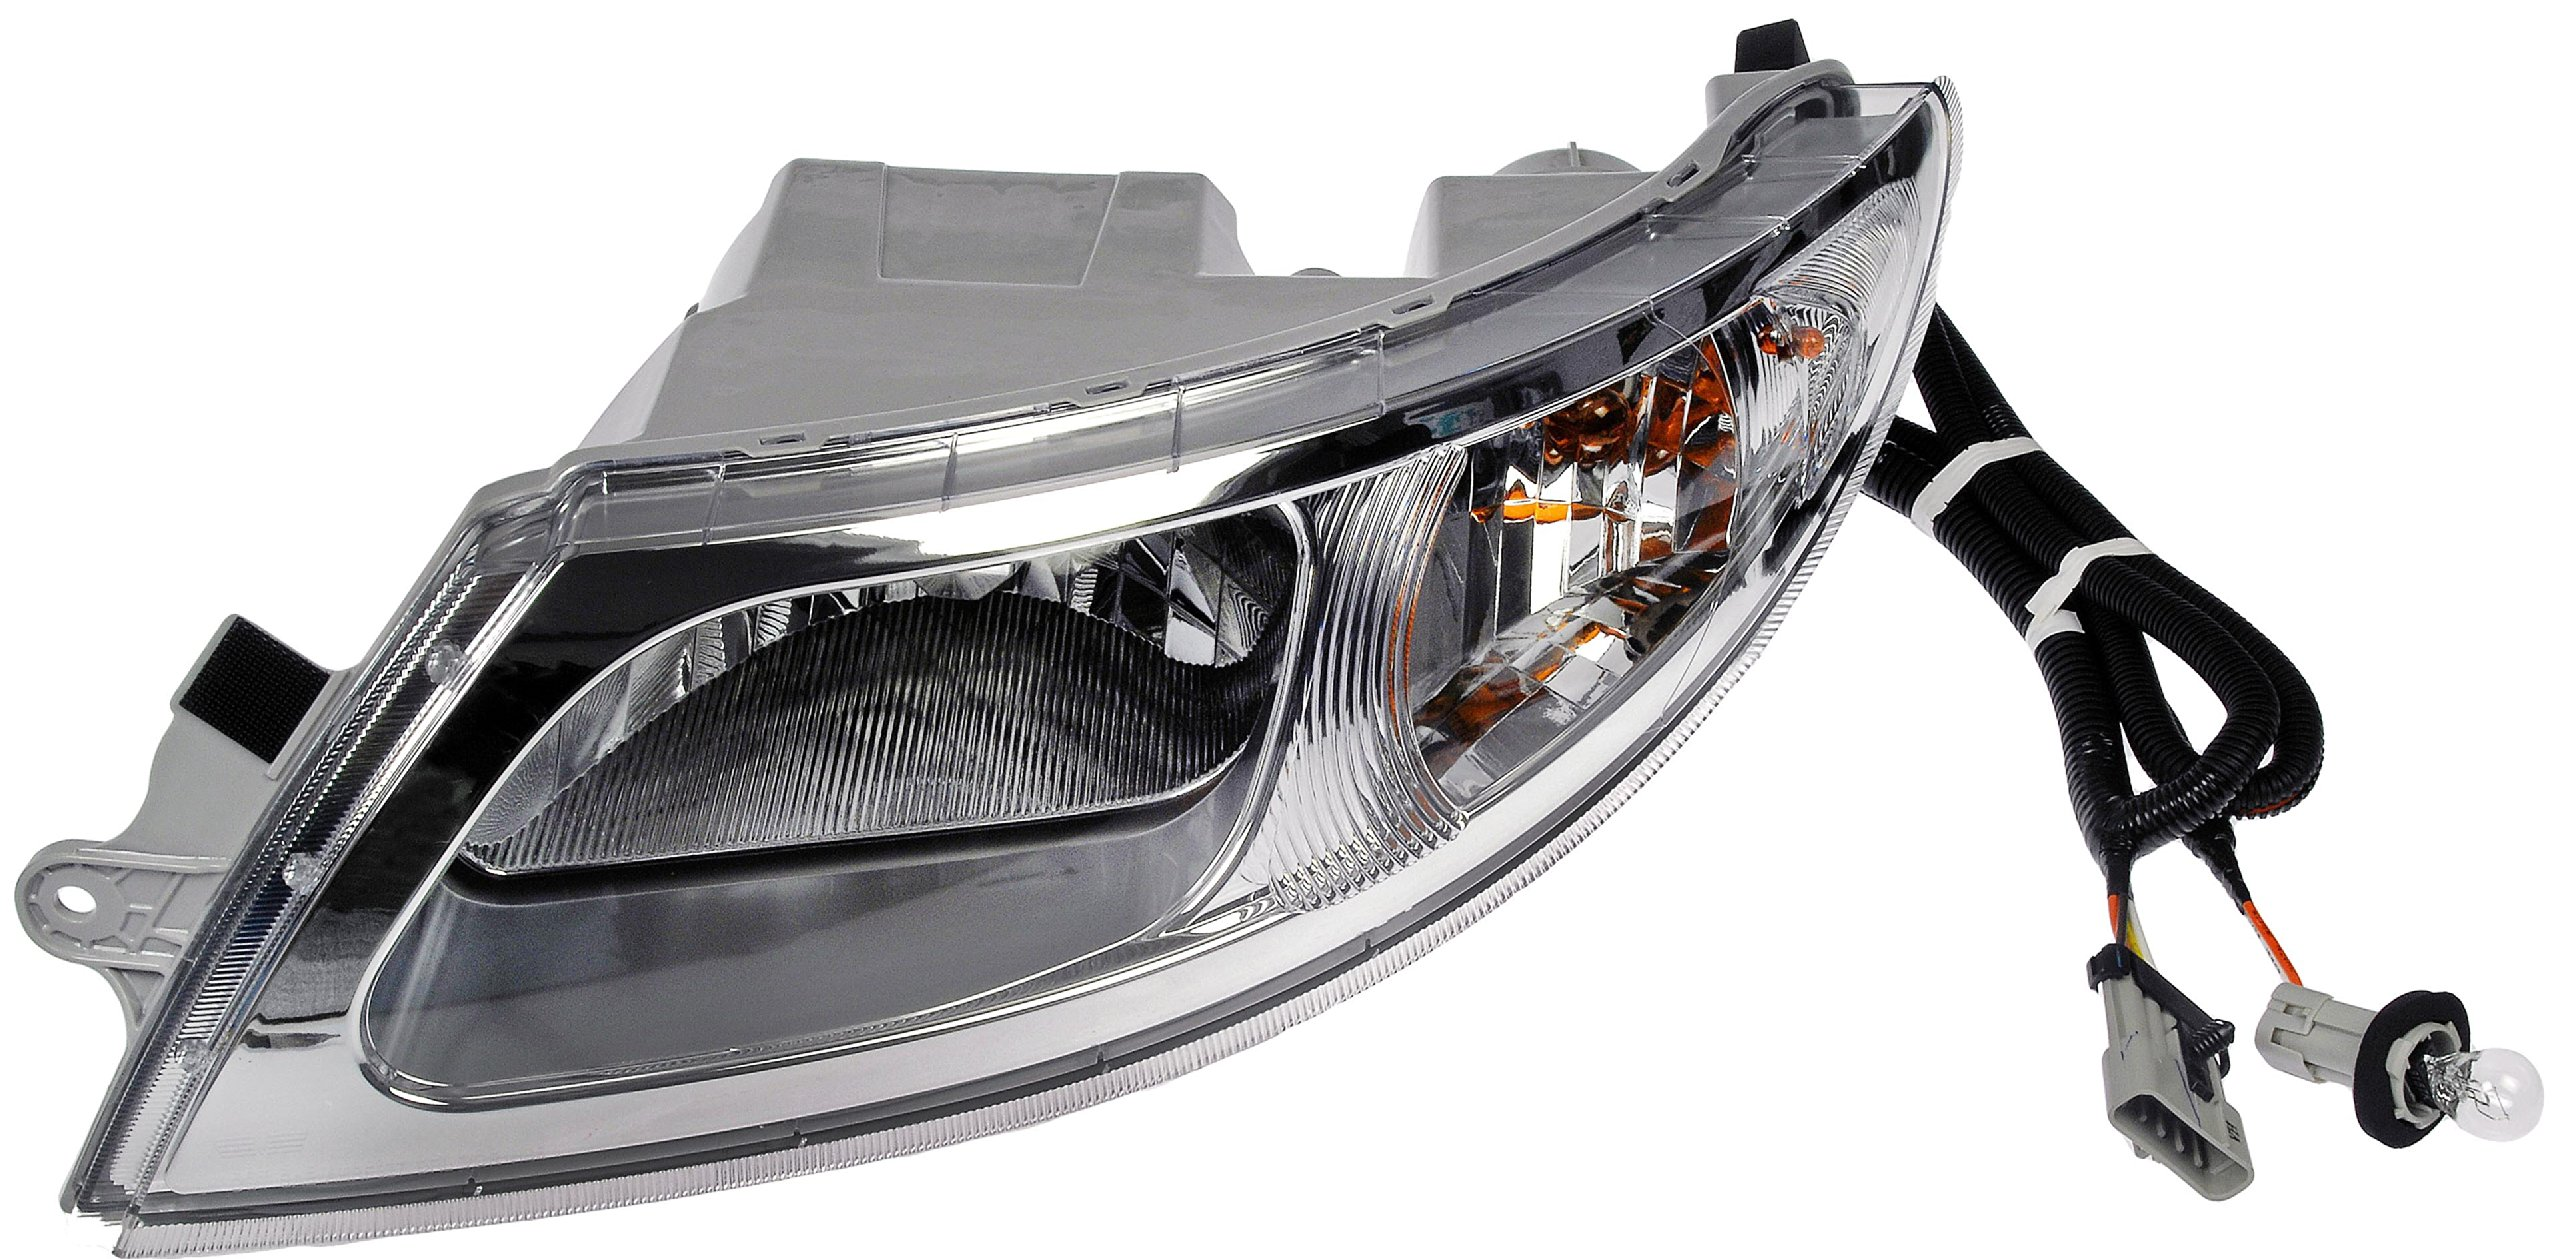 Dorman 888-5110 Driver Side Headlight Assembly For Select IC/IC Corporation/International Models by Dorman